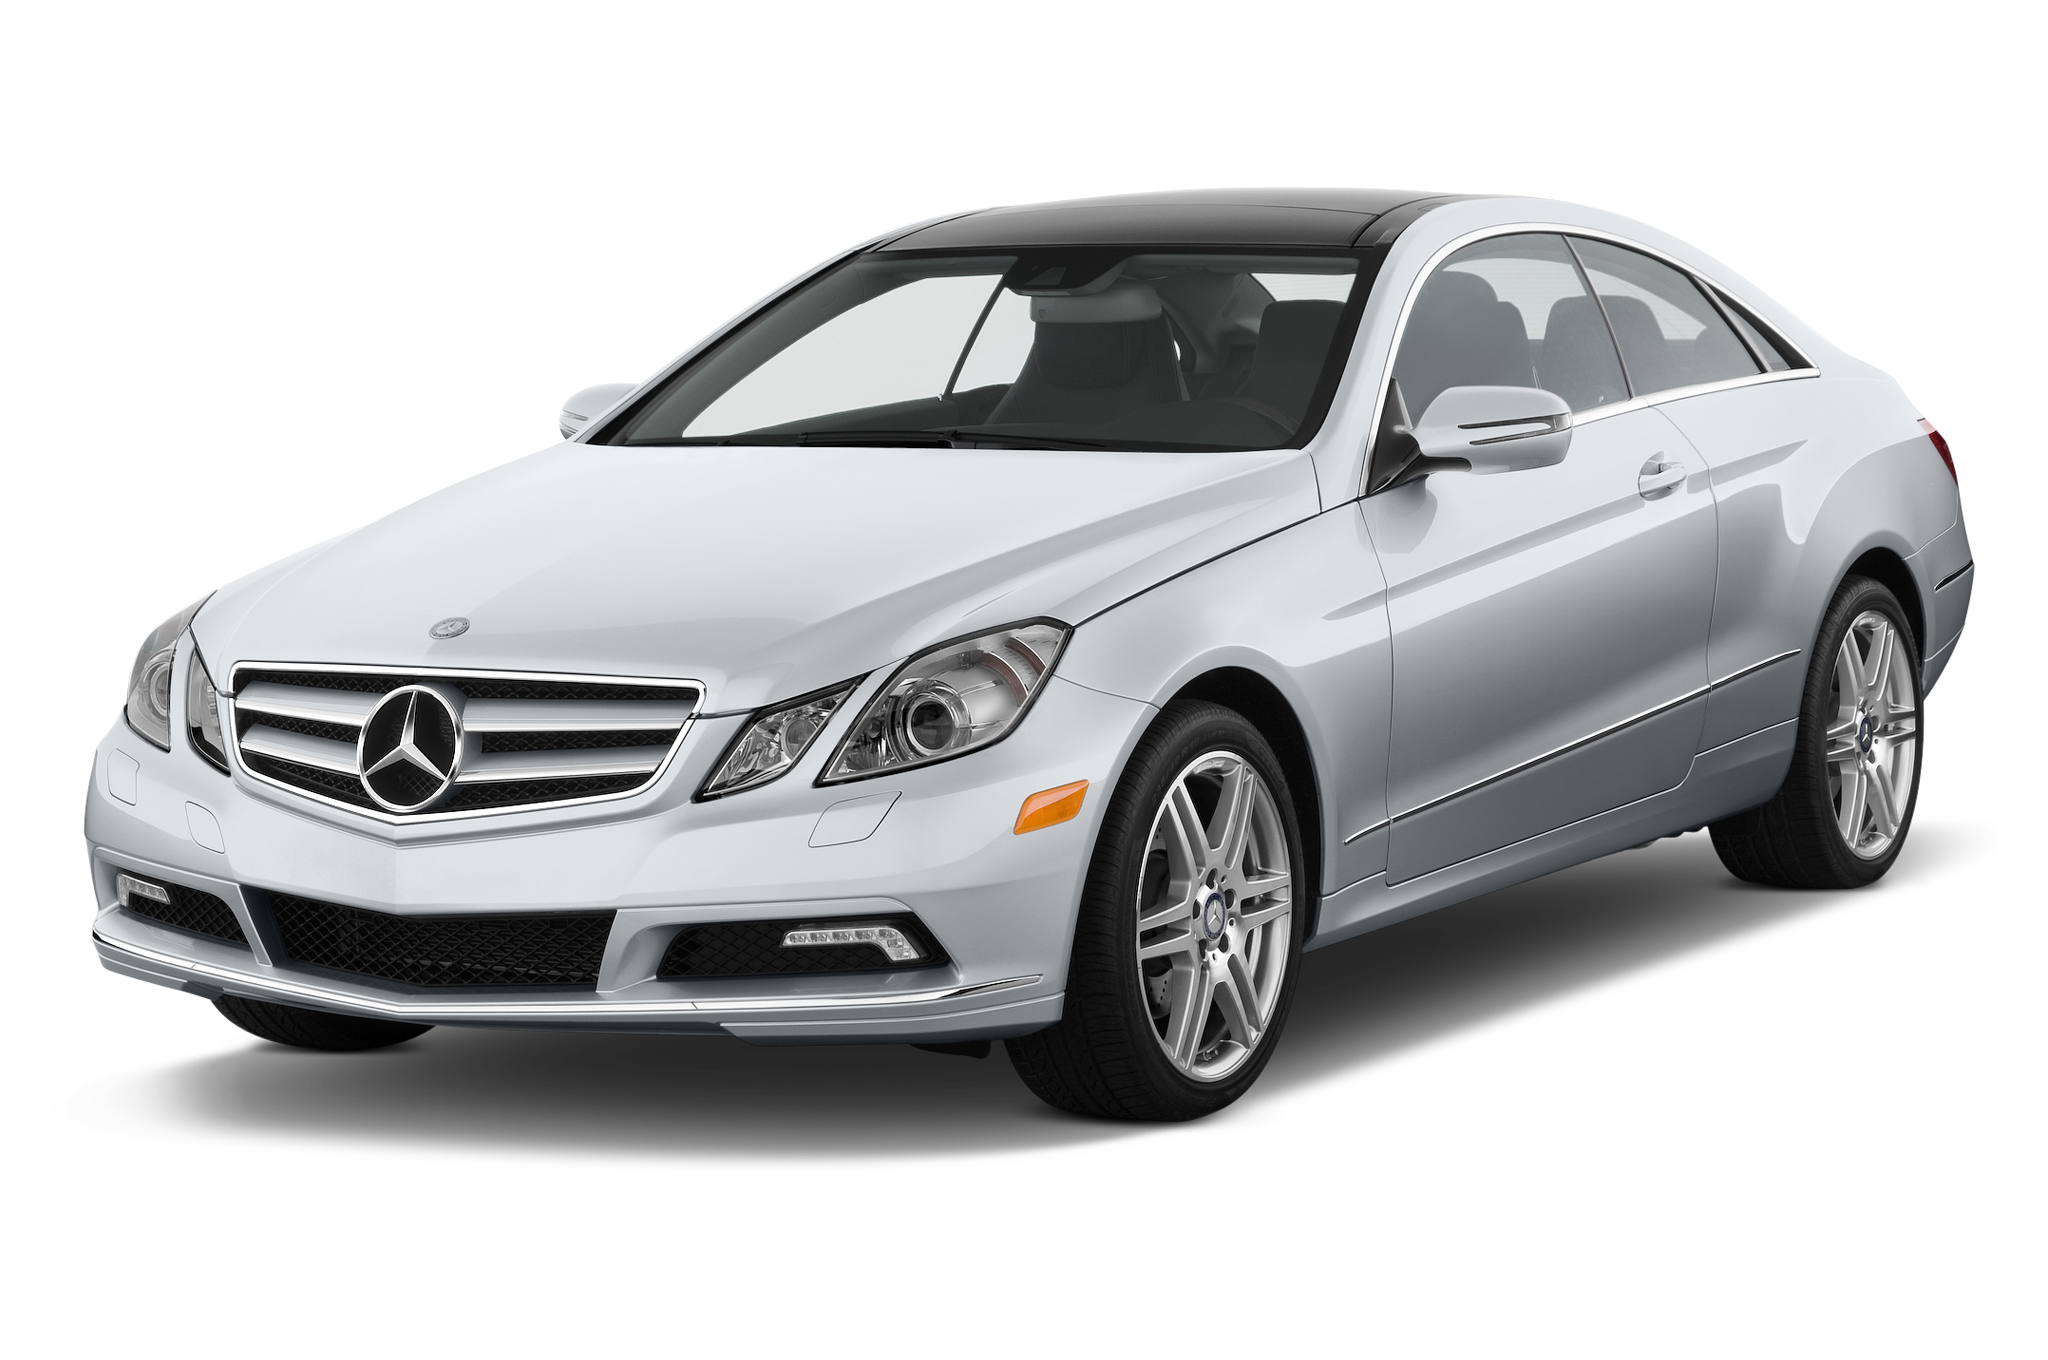 2010 mercedes benz e350 mercedes benz luxury coupe. Black Bedroom Furniture Sets. Home Design Ideas